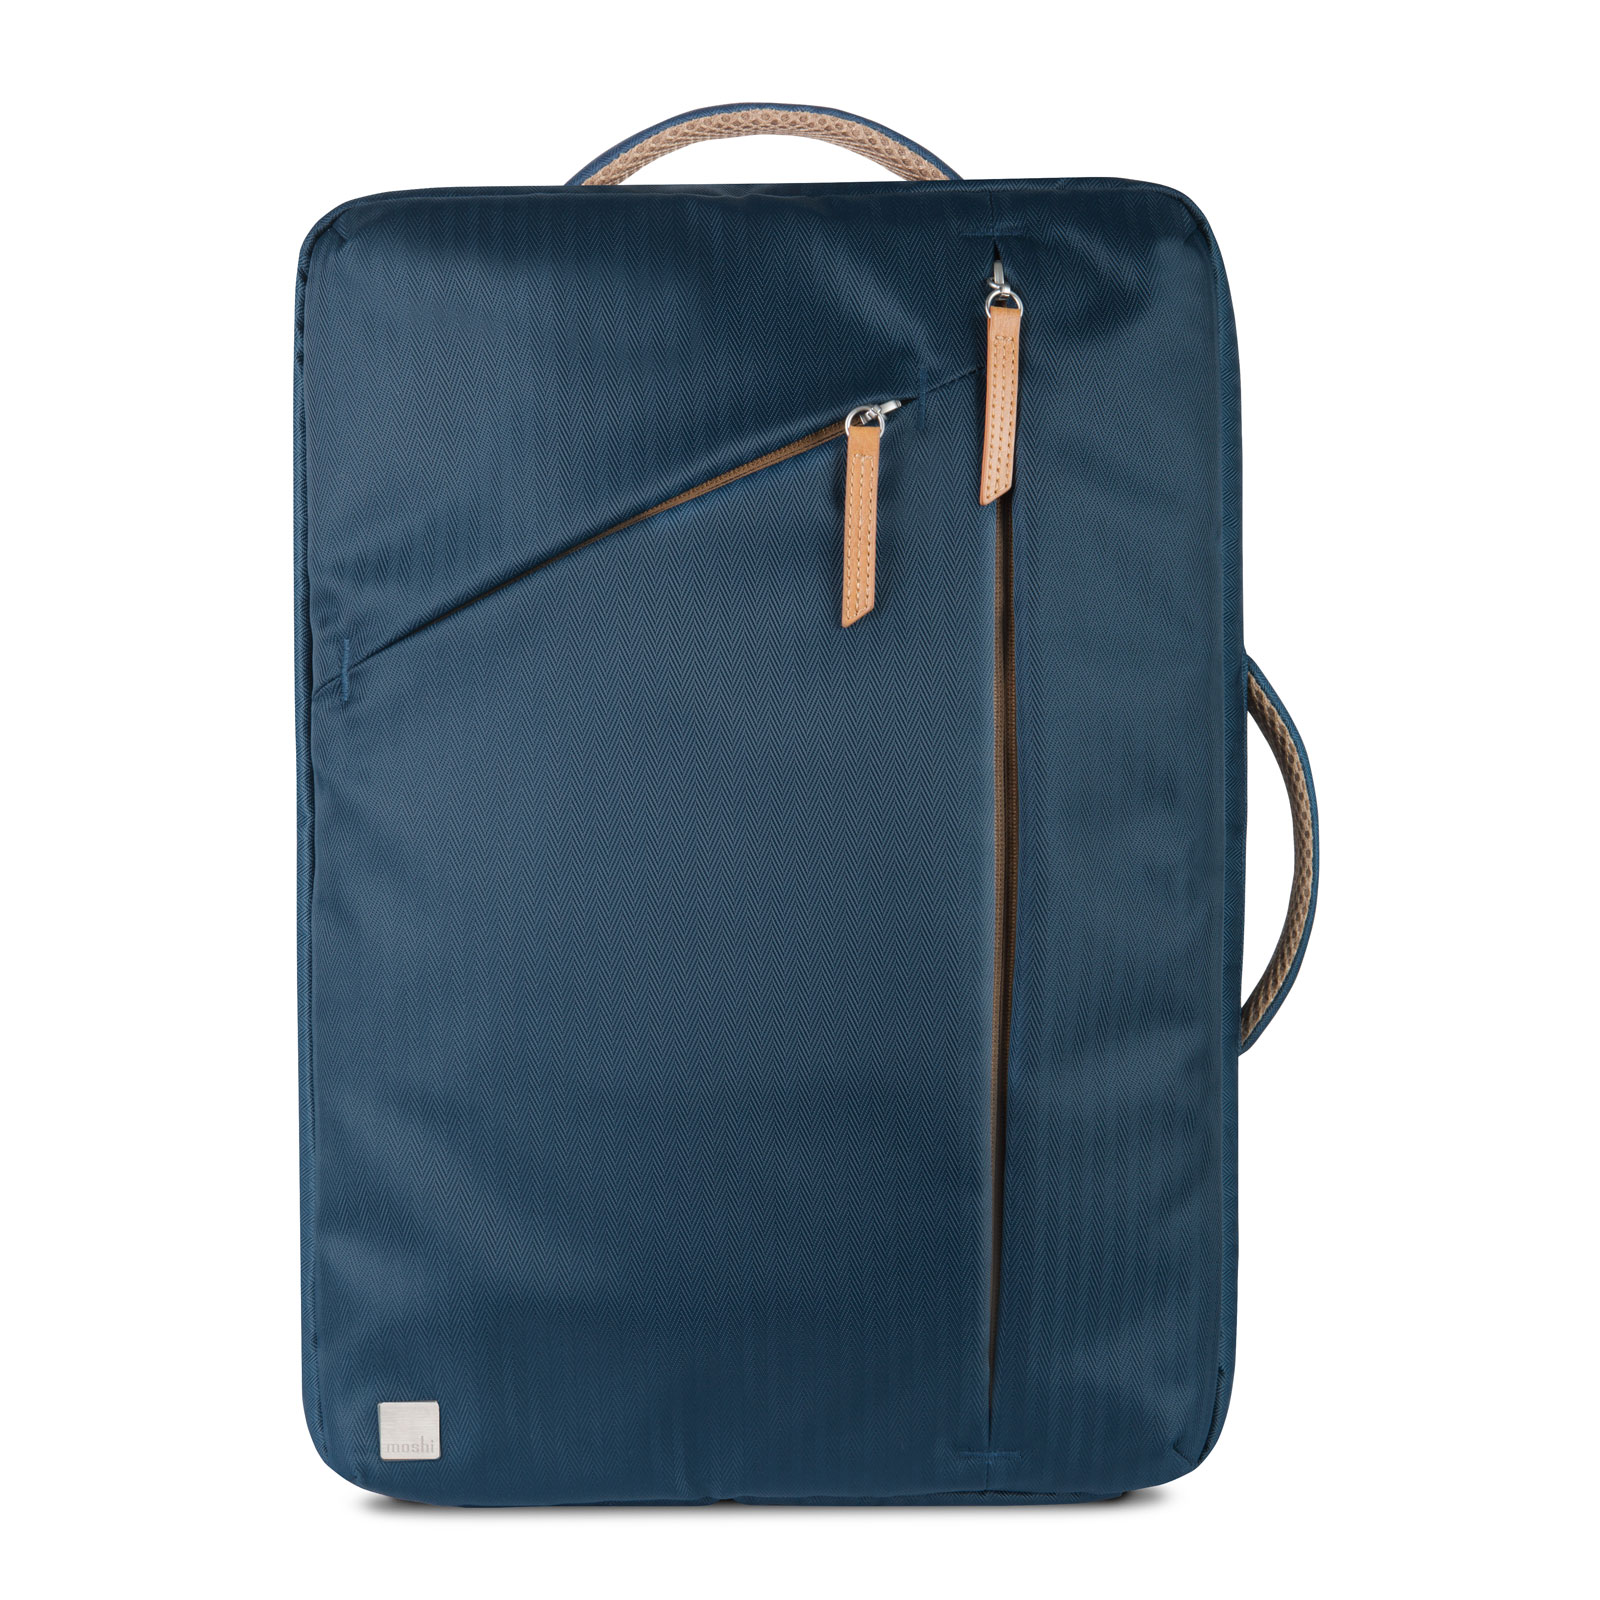 dc318564452 Laptop Backpack with Crossbody Design - Shop Backpacks | Blue ...